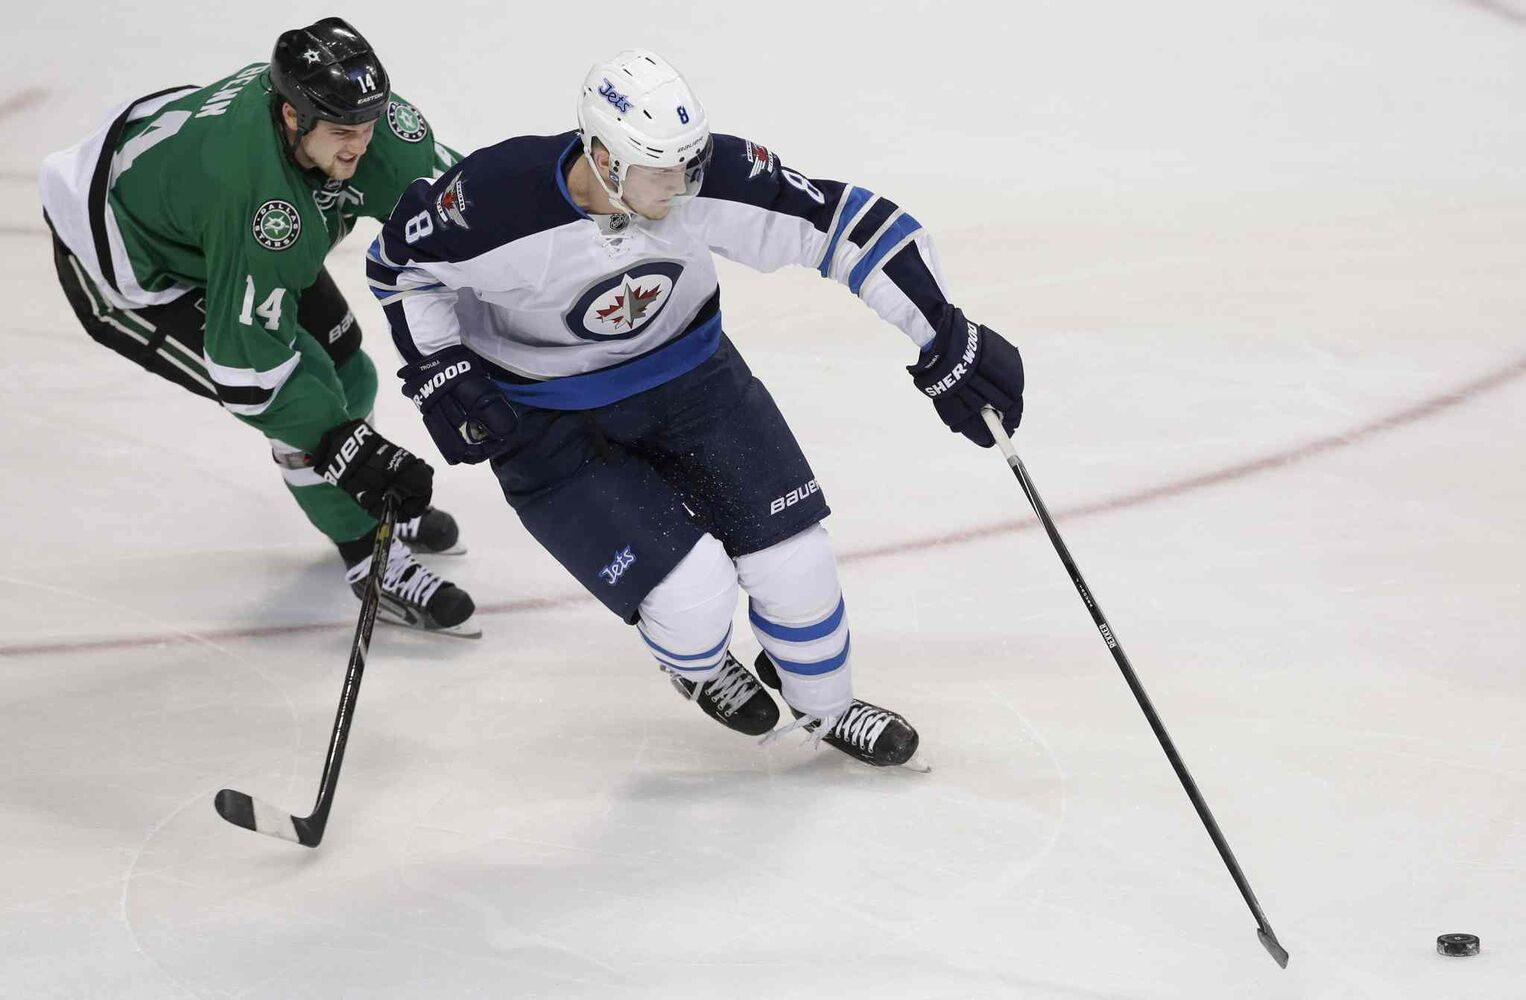 Winnipeg Jets defenceman Jacob Trouba skates with the puck while being pursued by Dallas Stars left-winger Jamie Benn during the first period. (L.M. OTERO / THE ASSOCIATED PRESS)